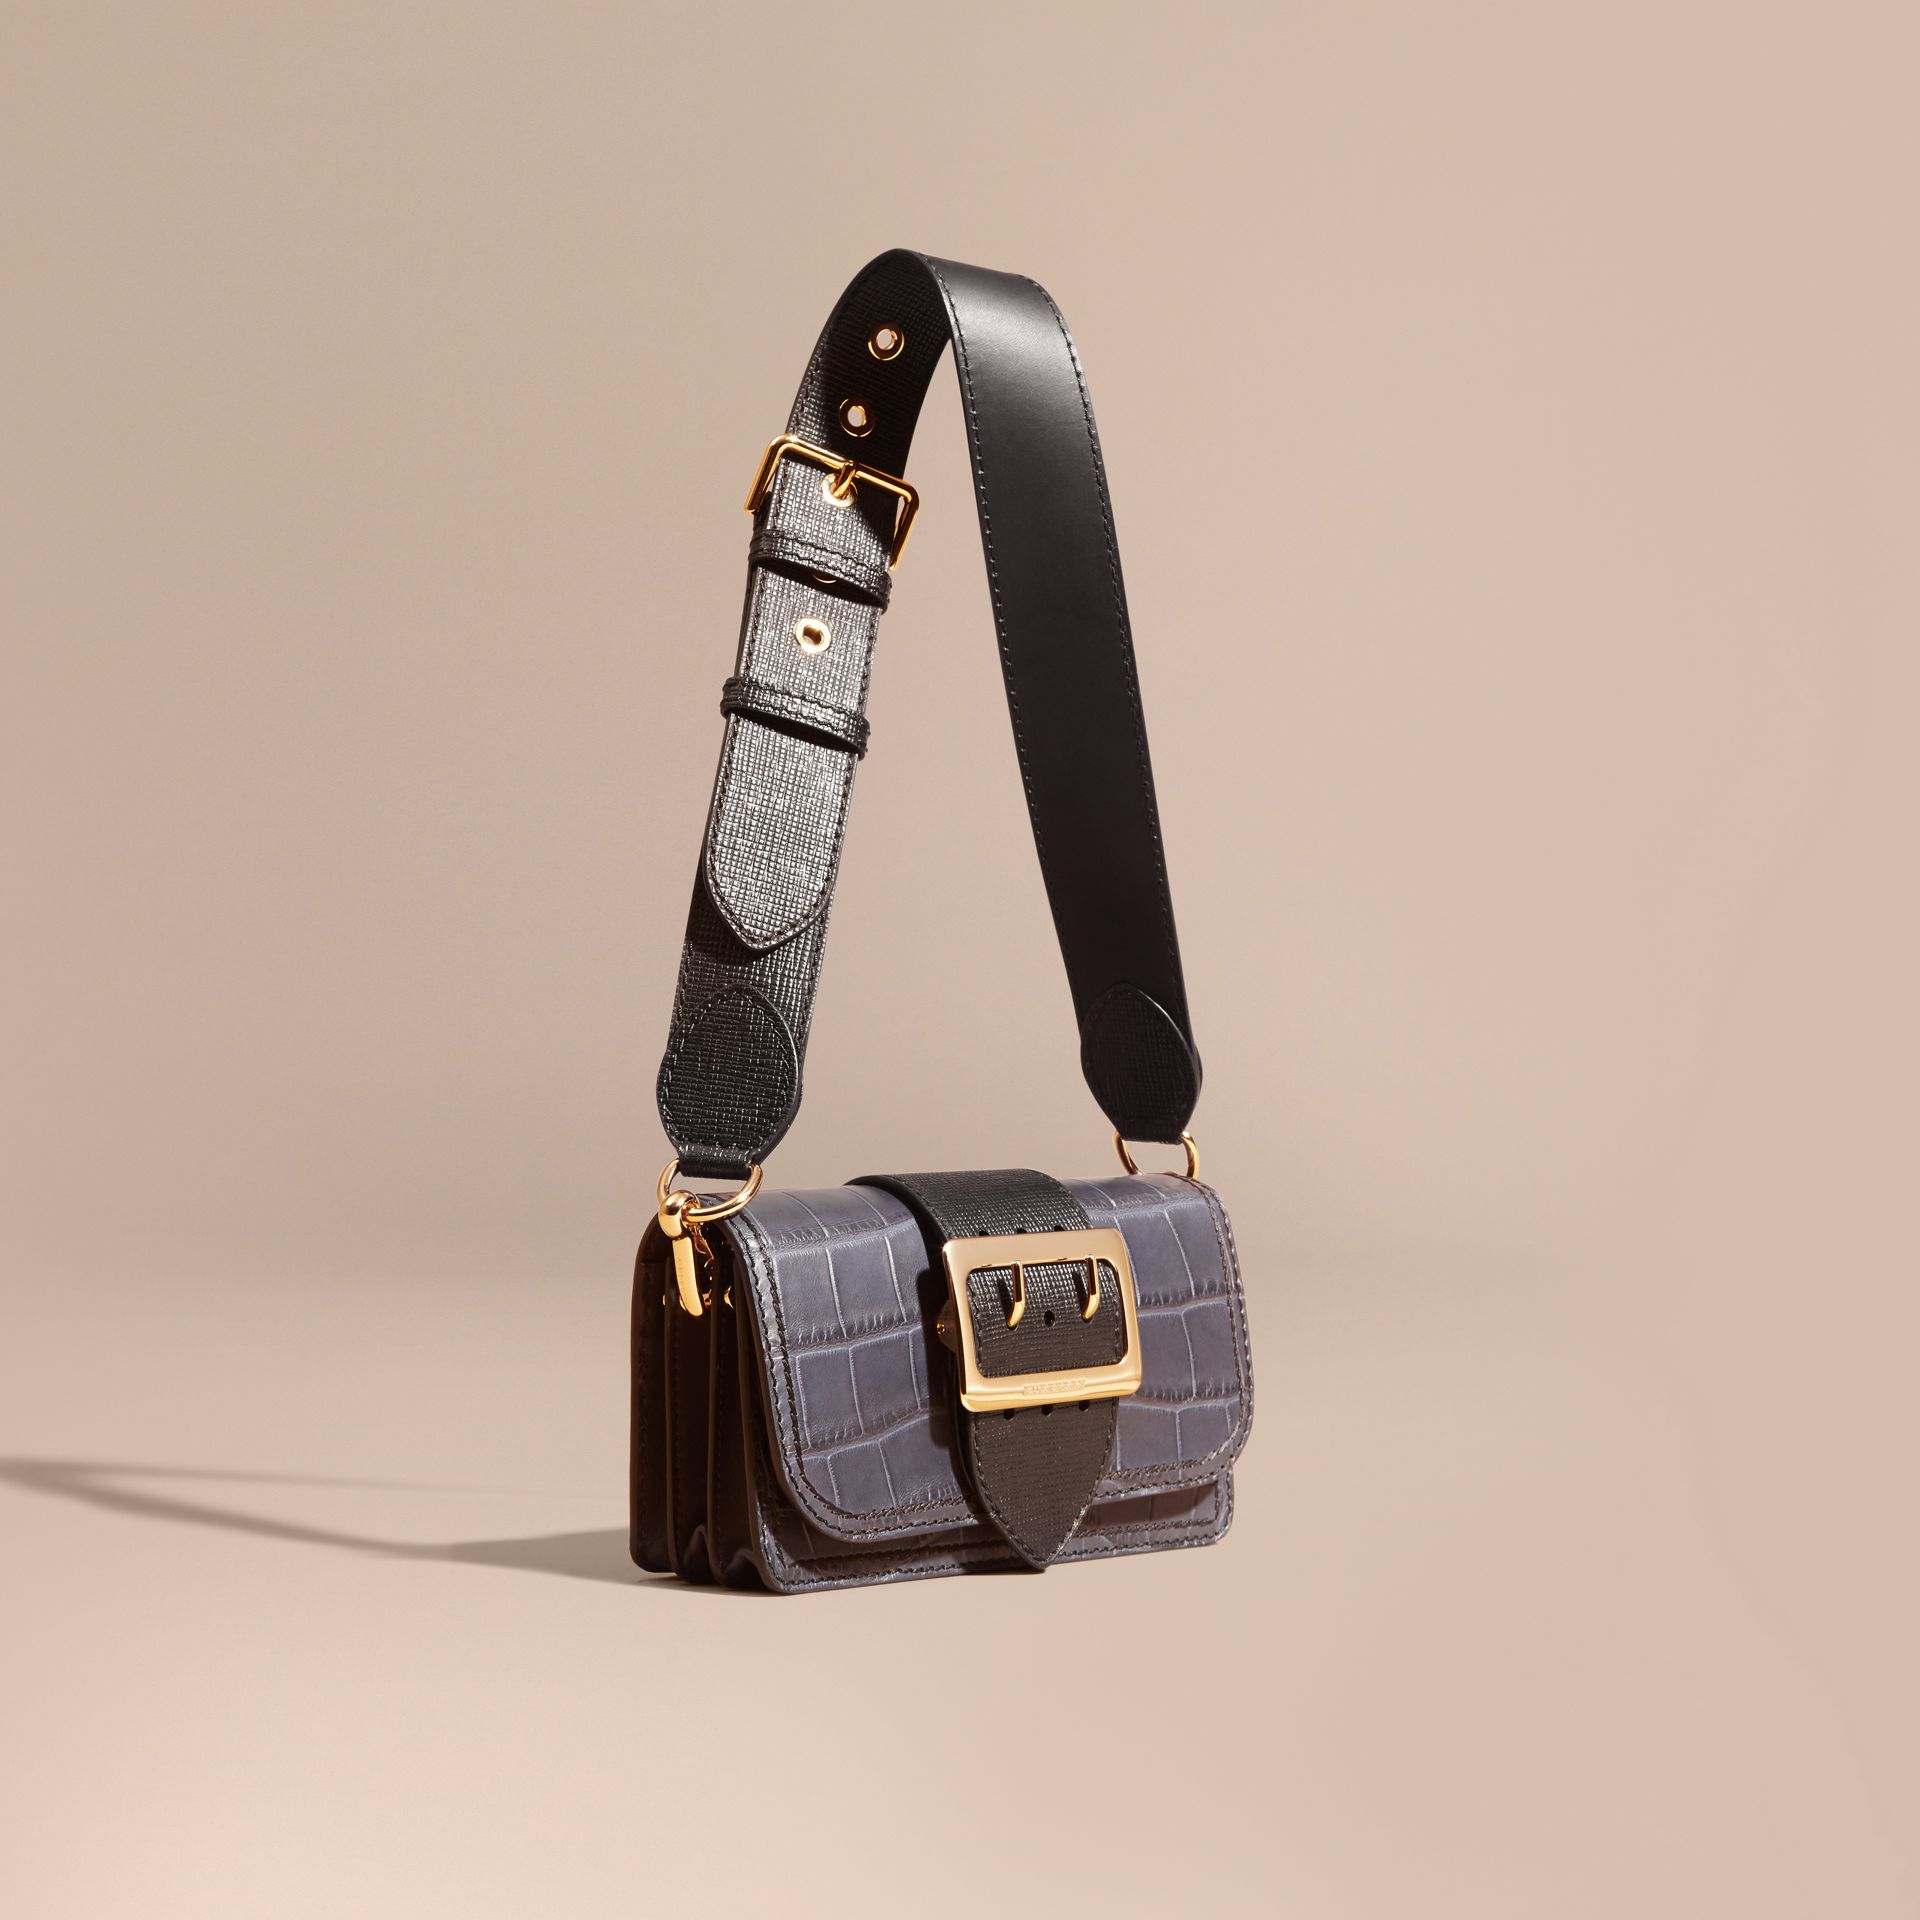 Petit sac The Buckle en alligator et cuir Marine/noir - photo de la galerie 1